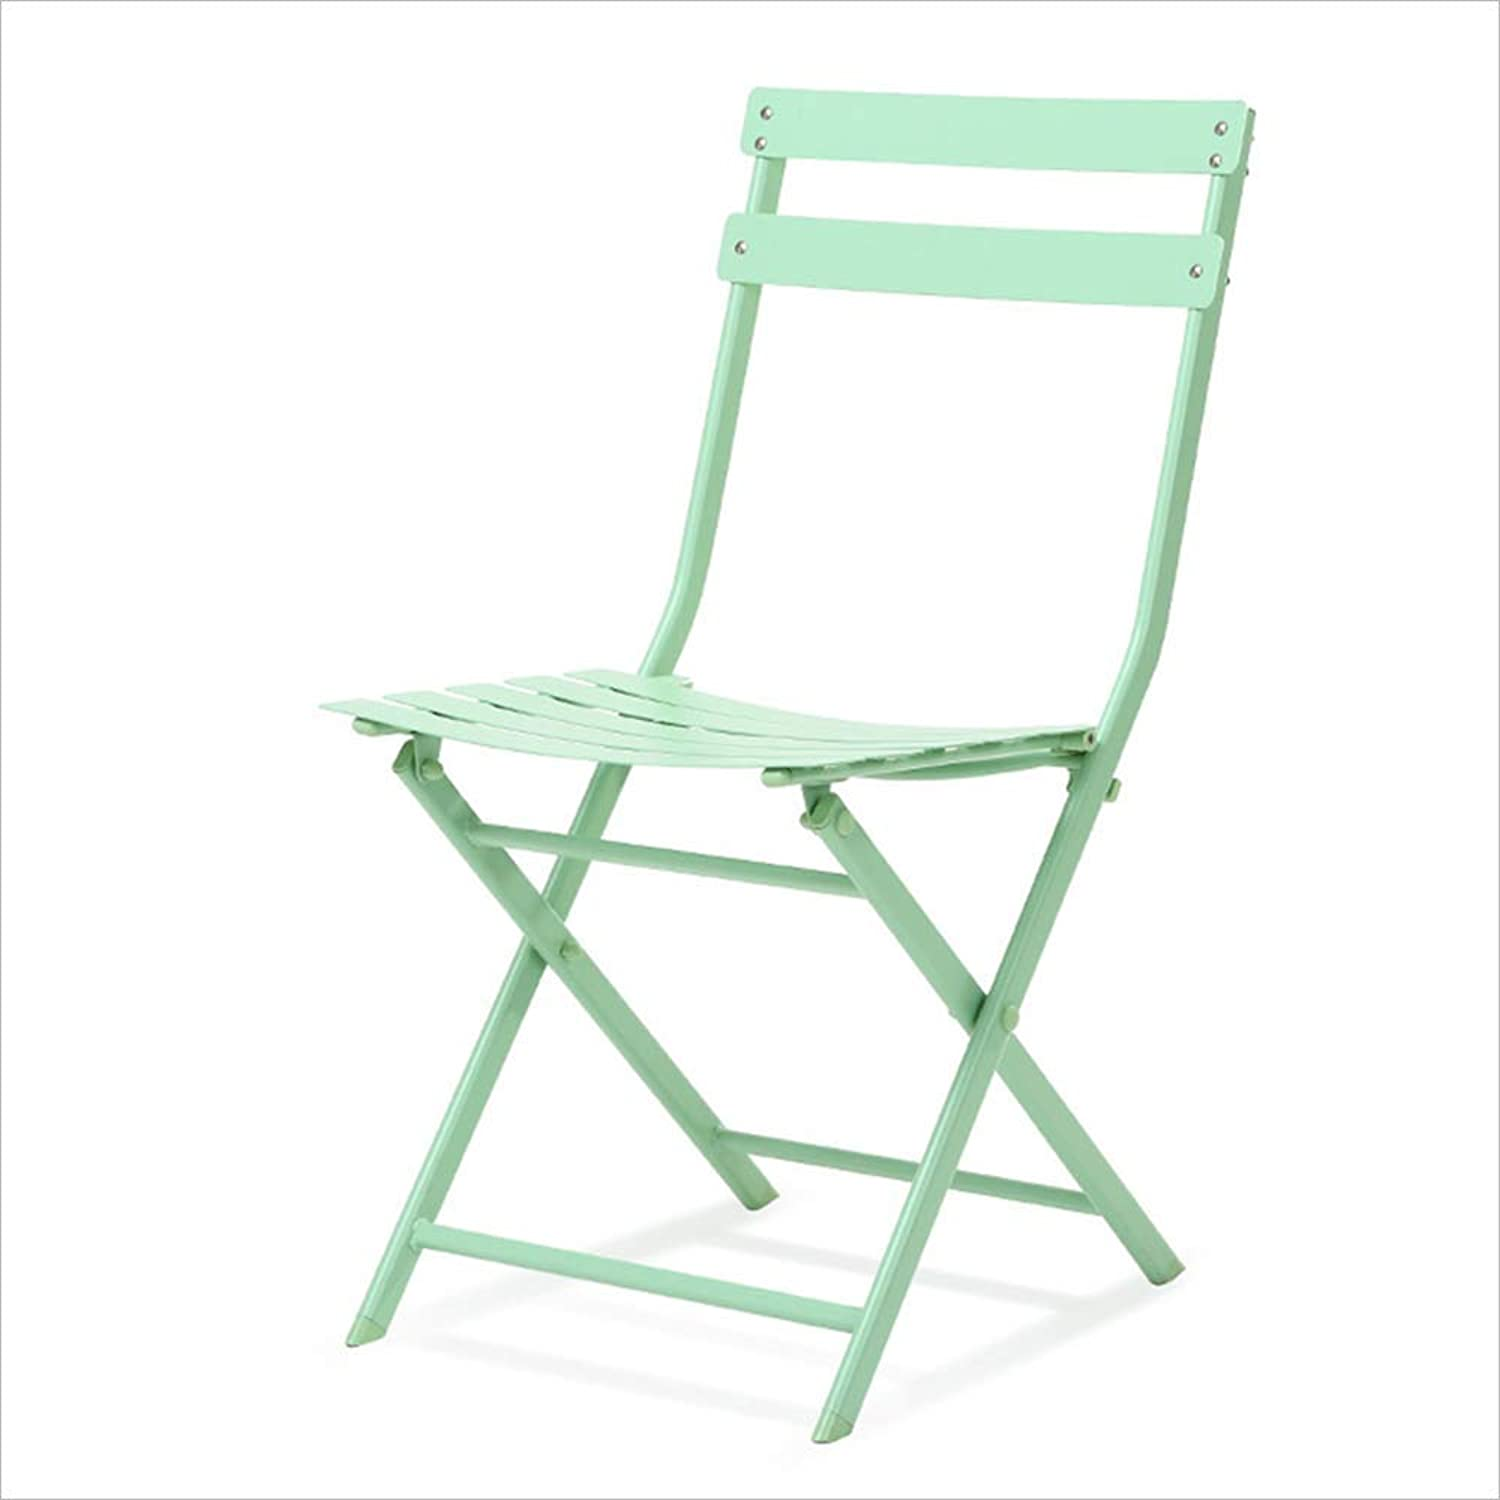 DQMSB Stylish and Simple Wrought Iron Folding Dining Chair European Balcony Leisure Chair Chair (color   Green)